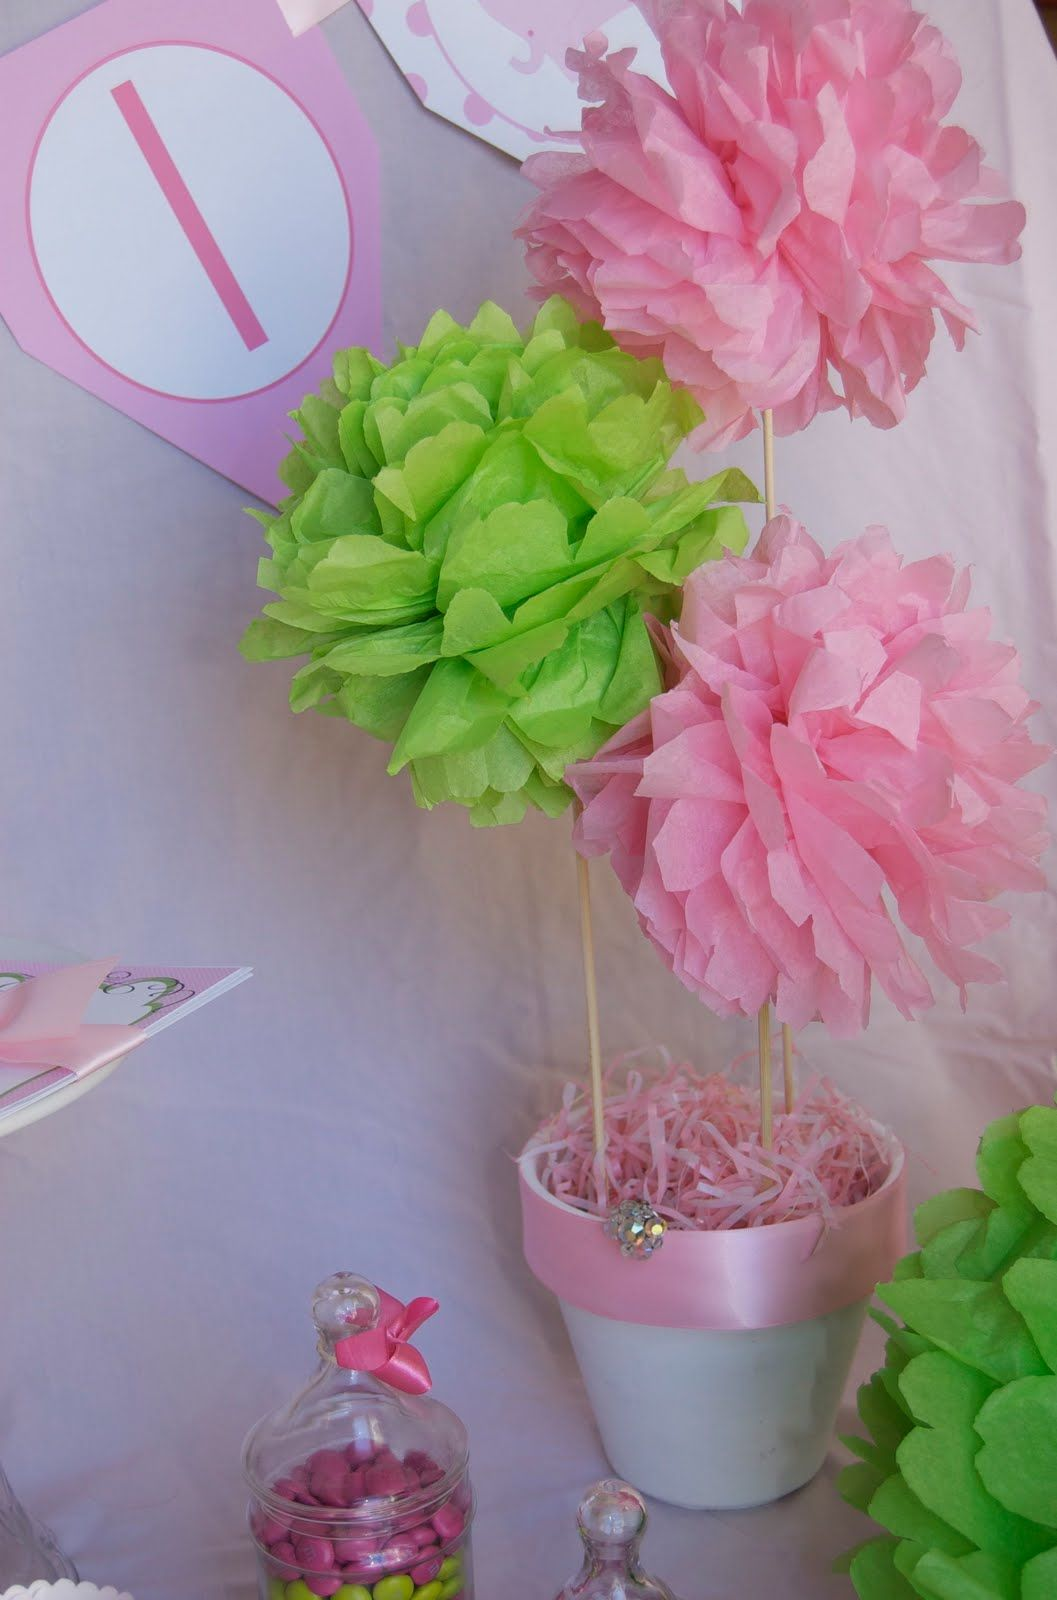 faab9e6b2ae31 Tissue Pouf Ball Pom Pom Arrangement Tutorial and How To- Part 1 — Frog  Prince Paperie